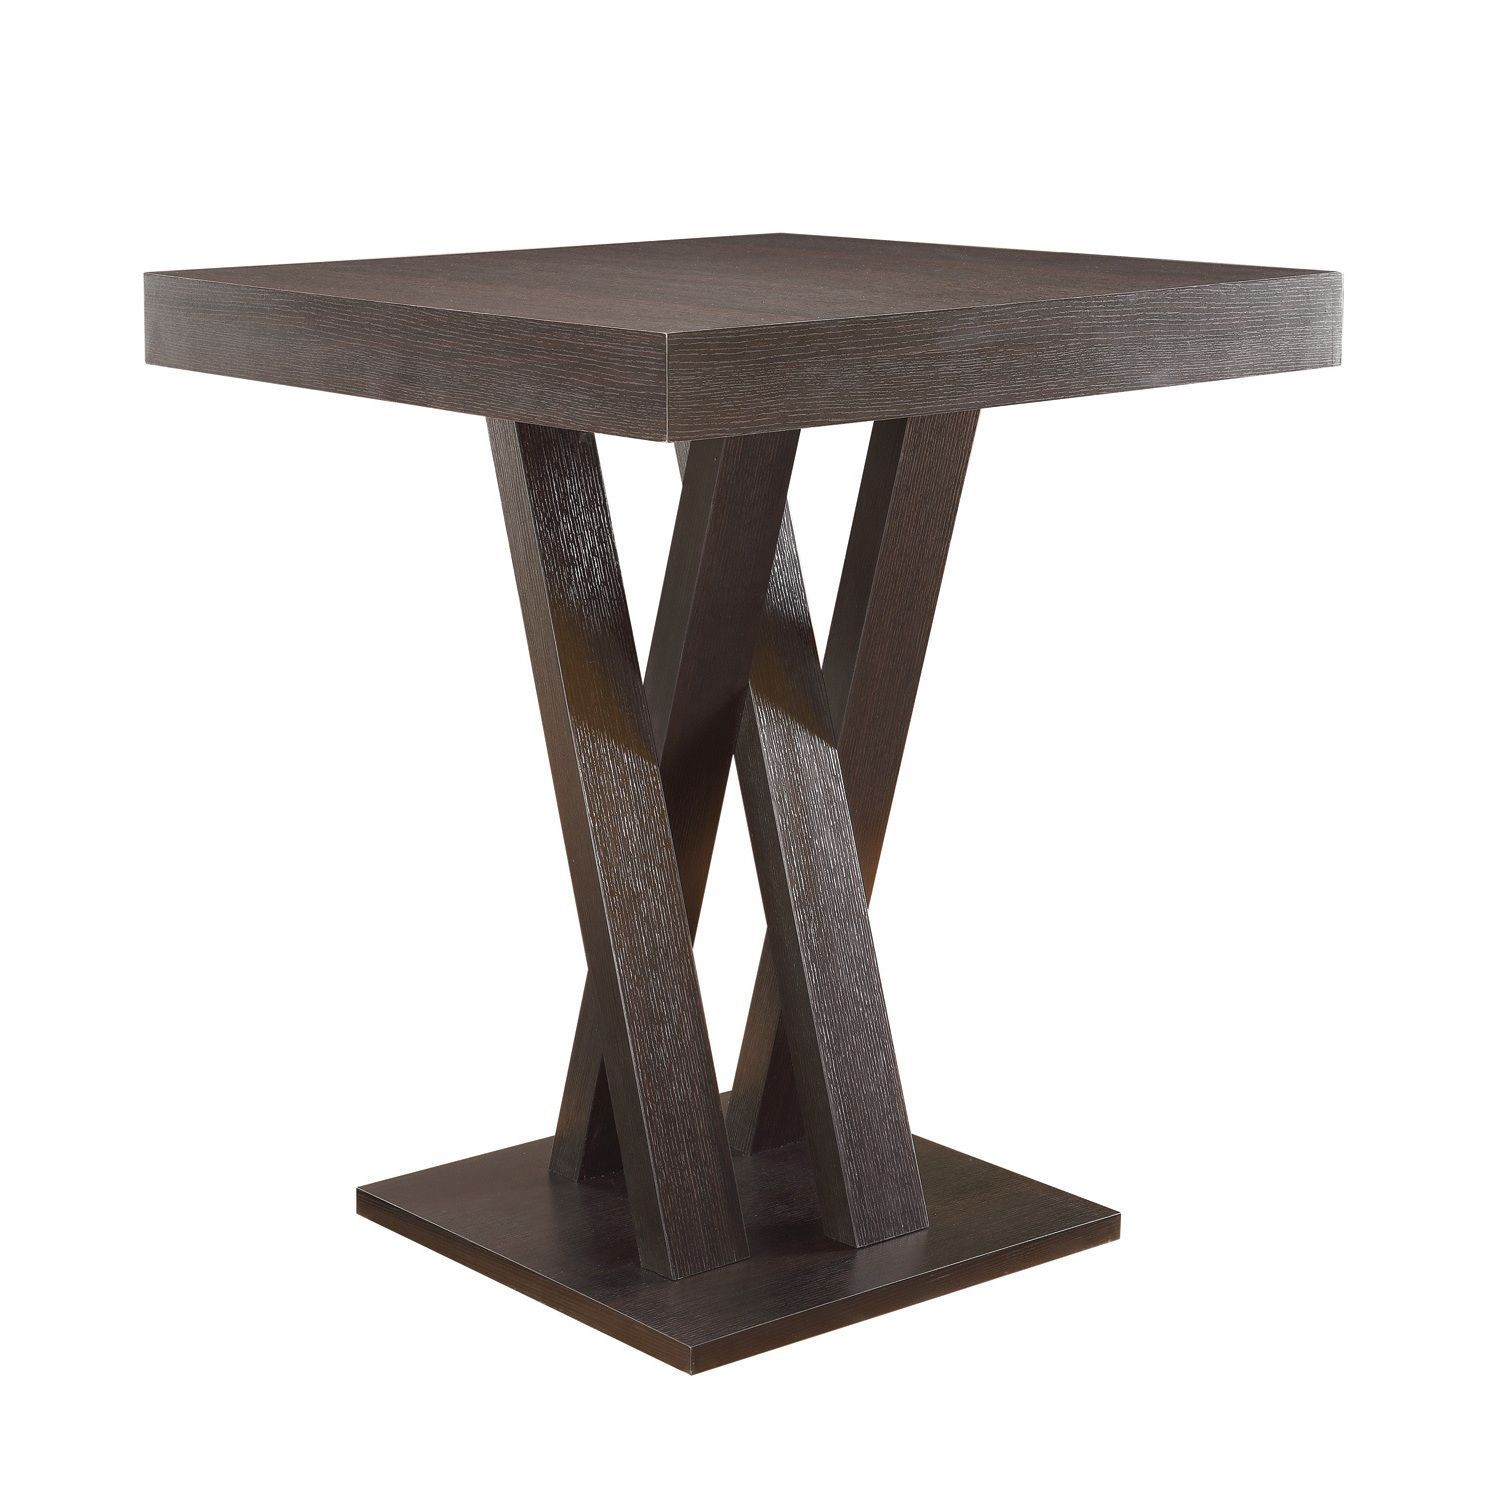 Overstock Com Online Shopping Bedding Furniture Electronics Jewelry Clothing More Counter Height Dining Table Counter Height Table Pedestal Dining Table [ 1500 x 1500 Pixel ]